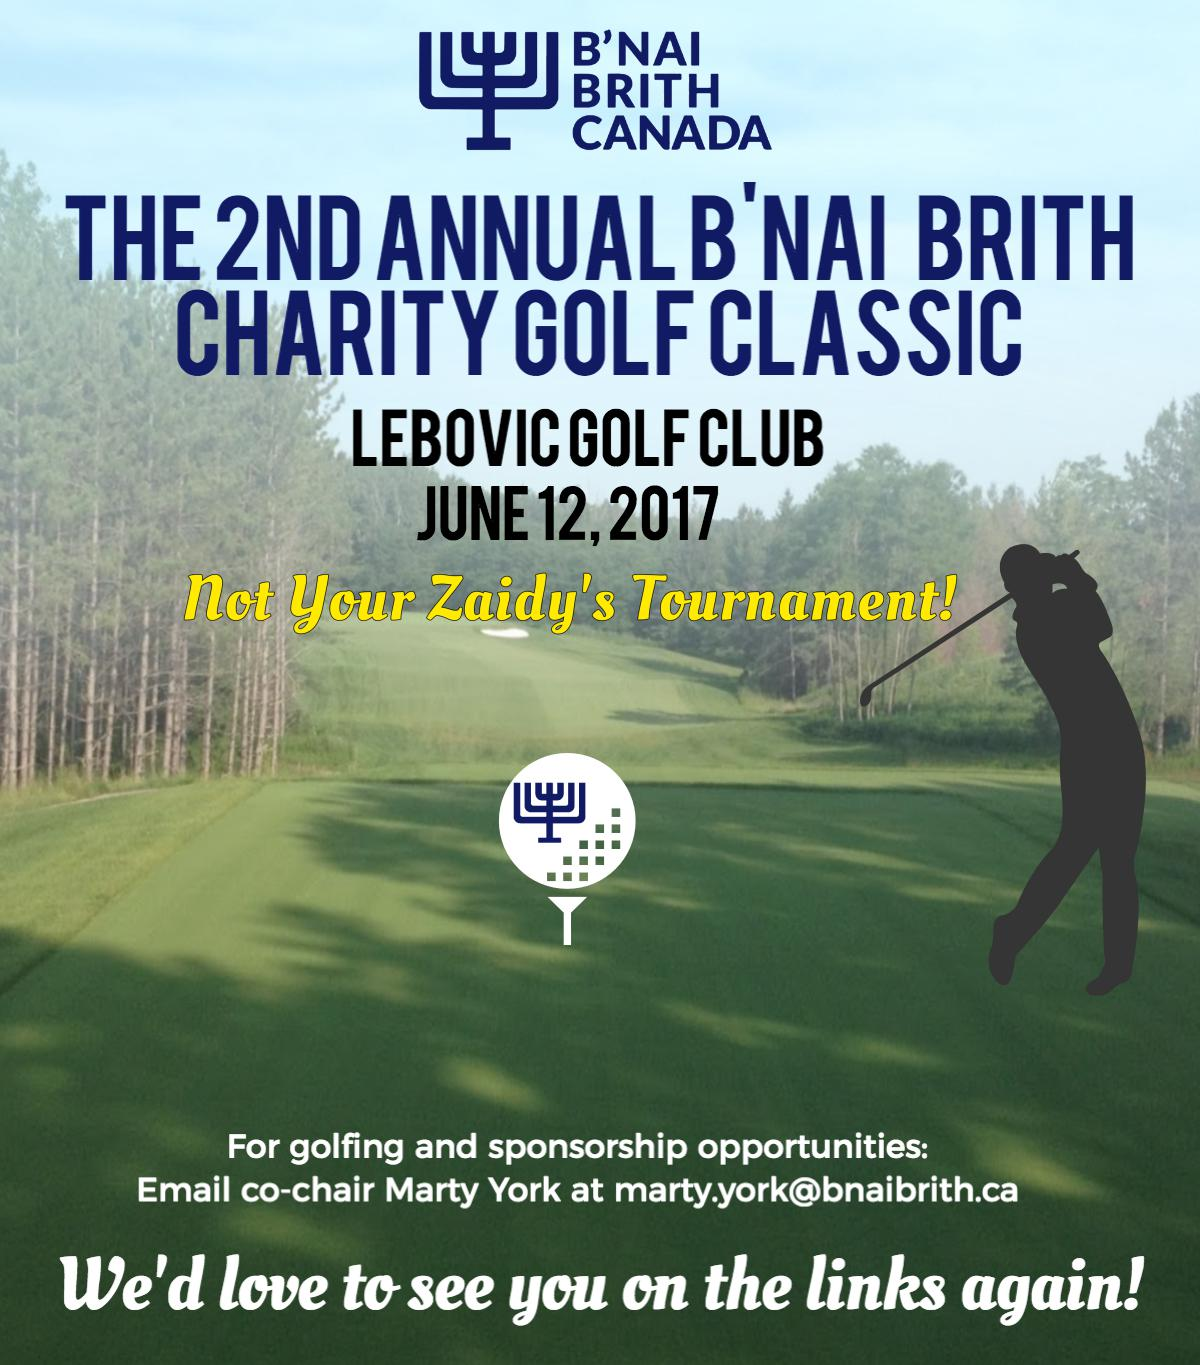 NEW_GOLF_FLYER_MARCH_14.jpeg